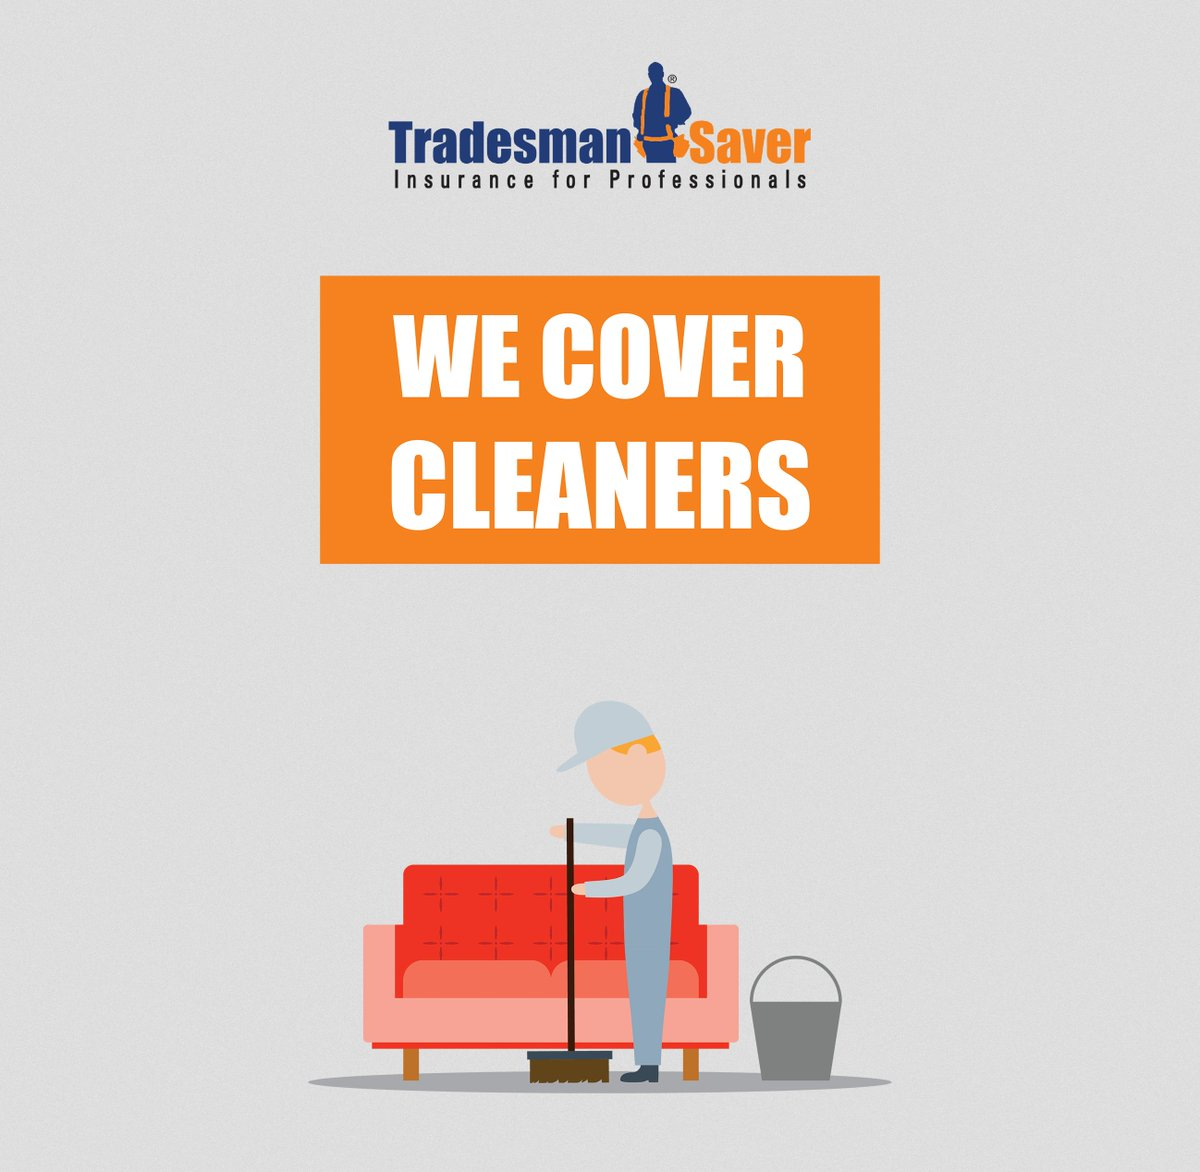 tradesman_saver photo